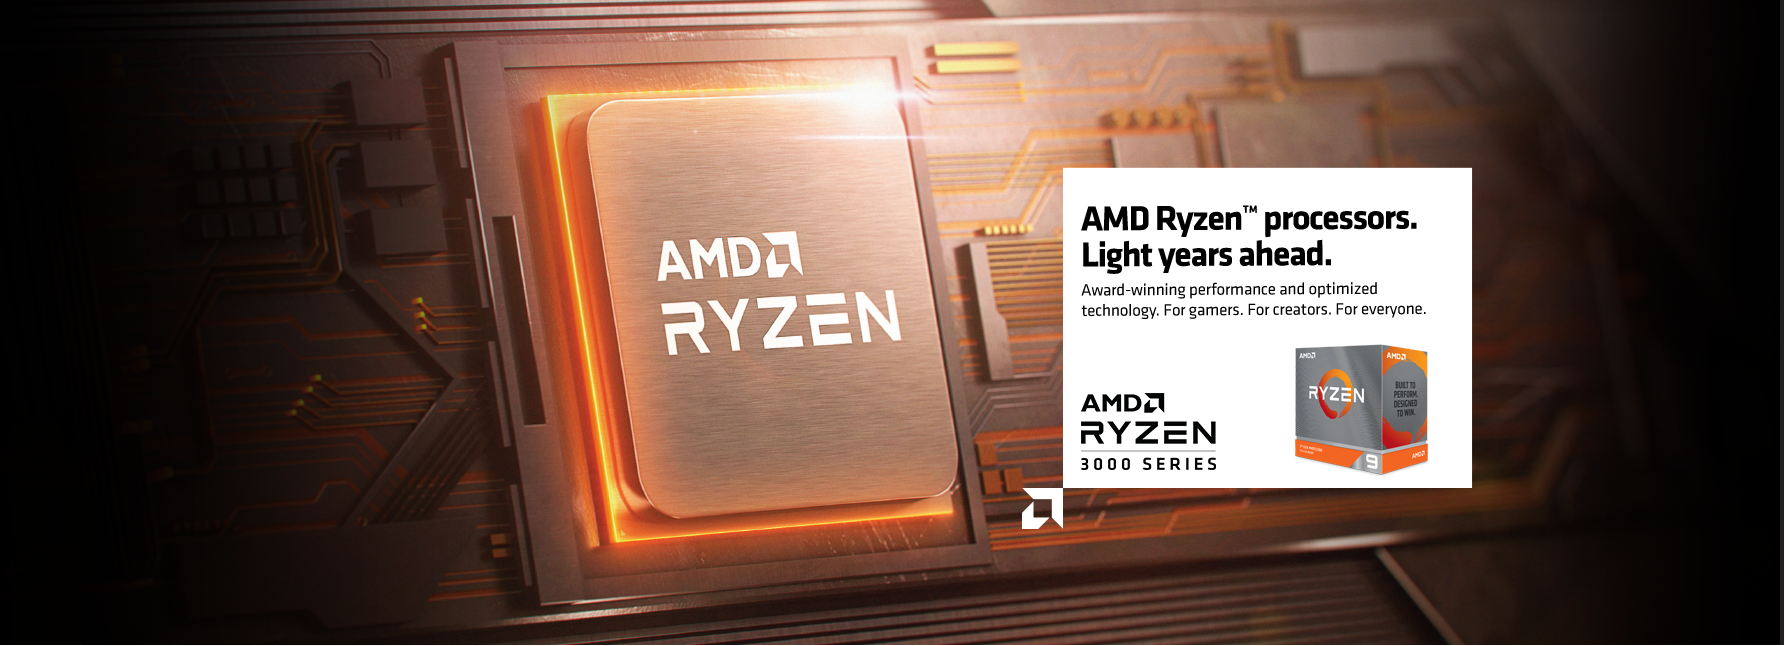 AMD Ryzen processors. Light years ahead. Award-winning performance and optimized technology. For gamers. For creators. For everyone.